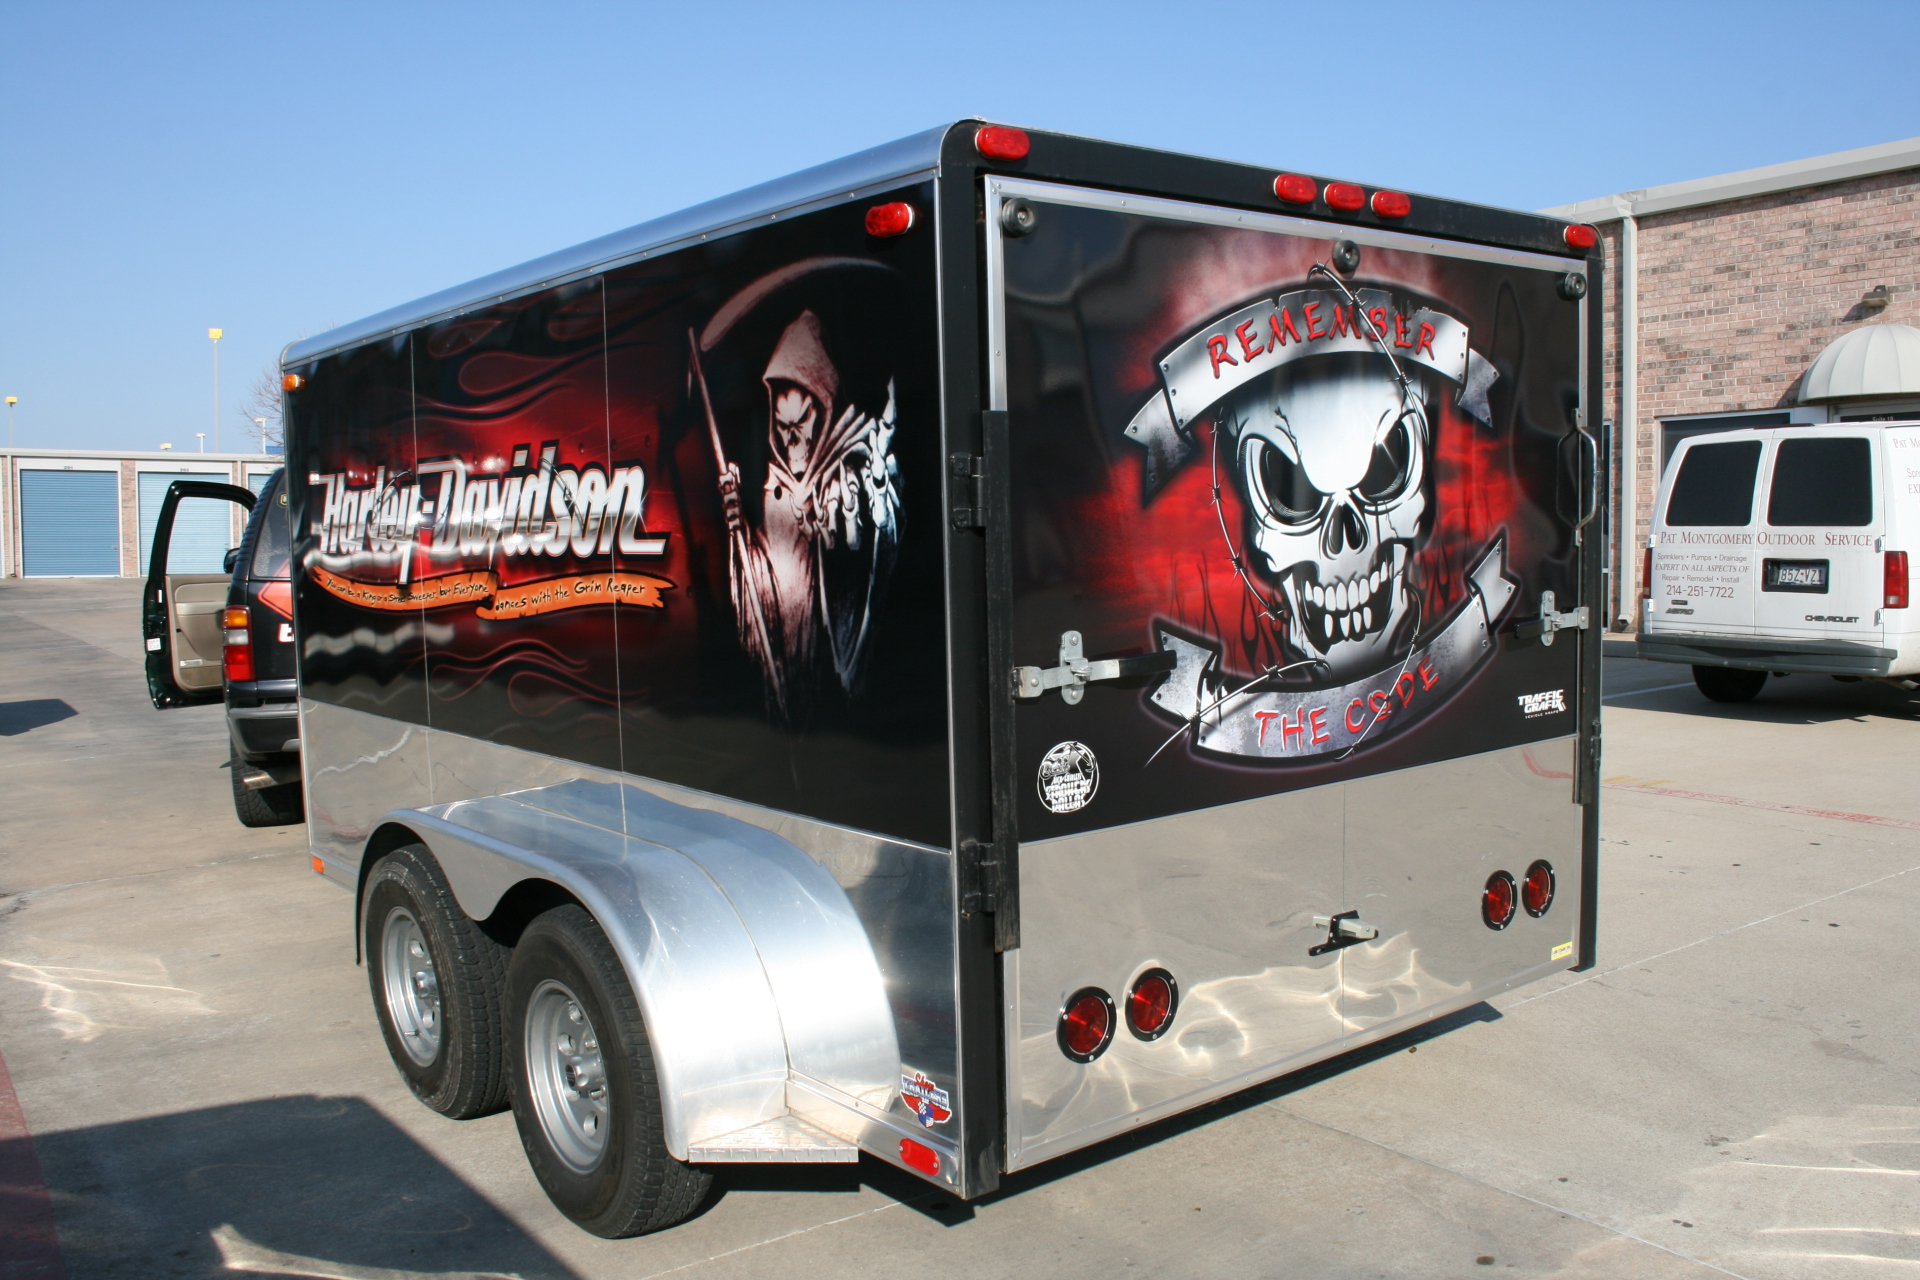 Motorcycle trailer wrap, trailer wrap, car wrap, trailer advertising, trailer decals, trailer wrap design, trailers dfw, trailers dallas